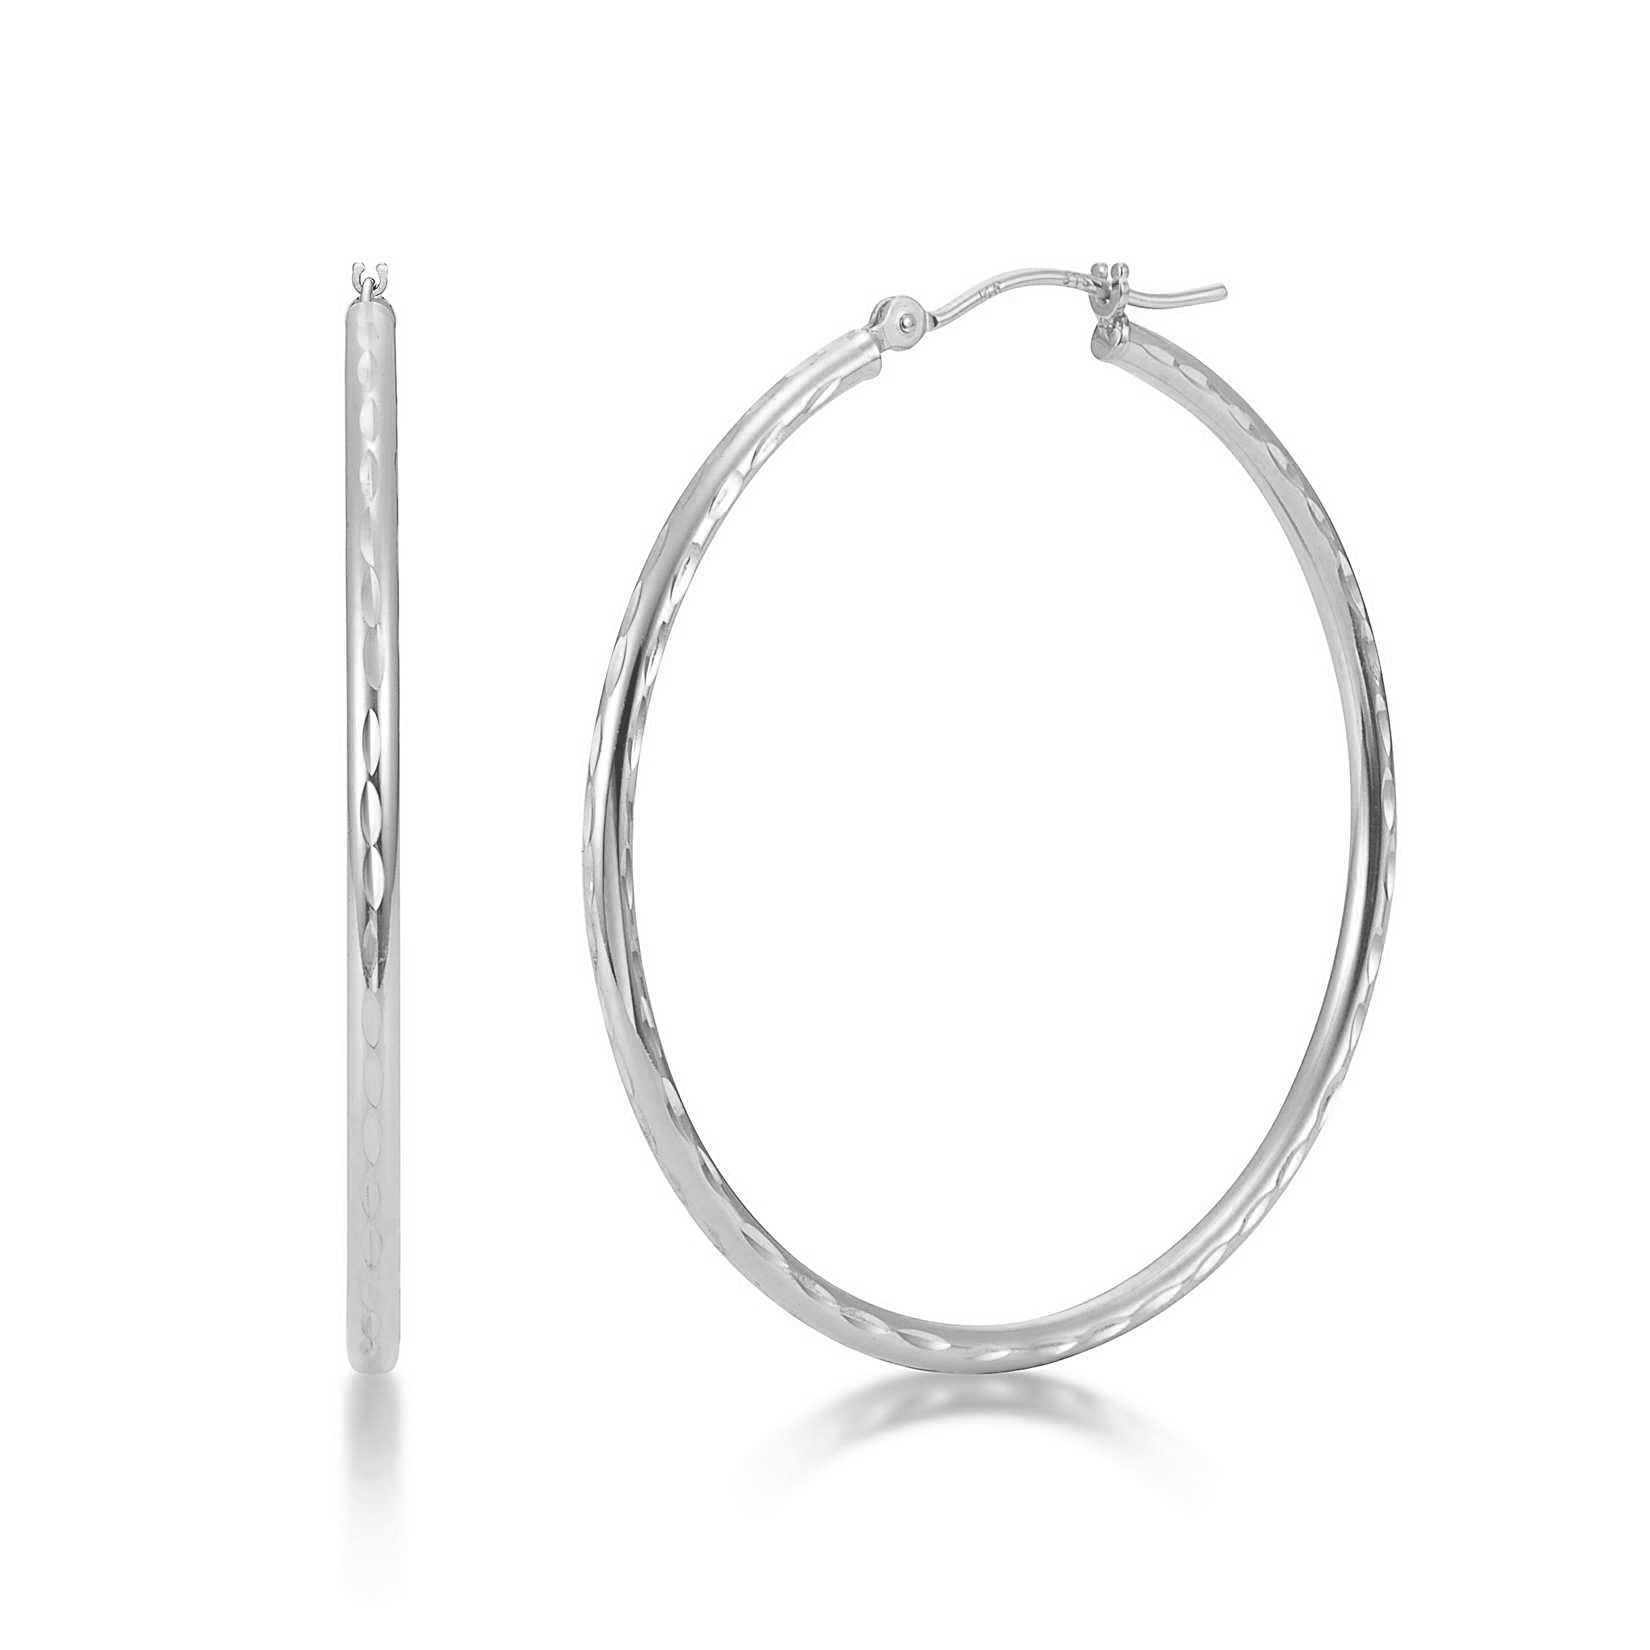 Earring Chest Sterling Silver Round Tube Earrings 2mm Wide 20mm Diameter